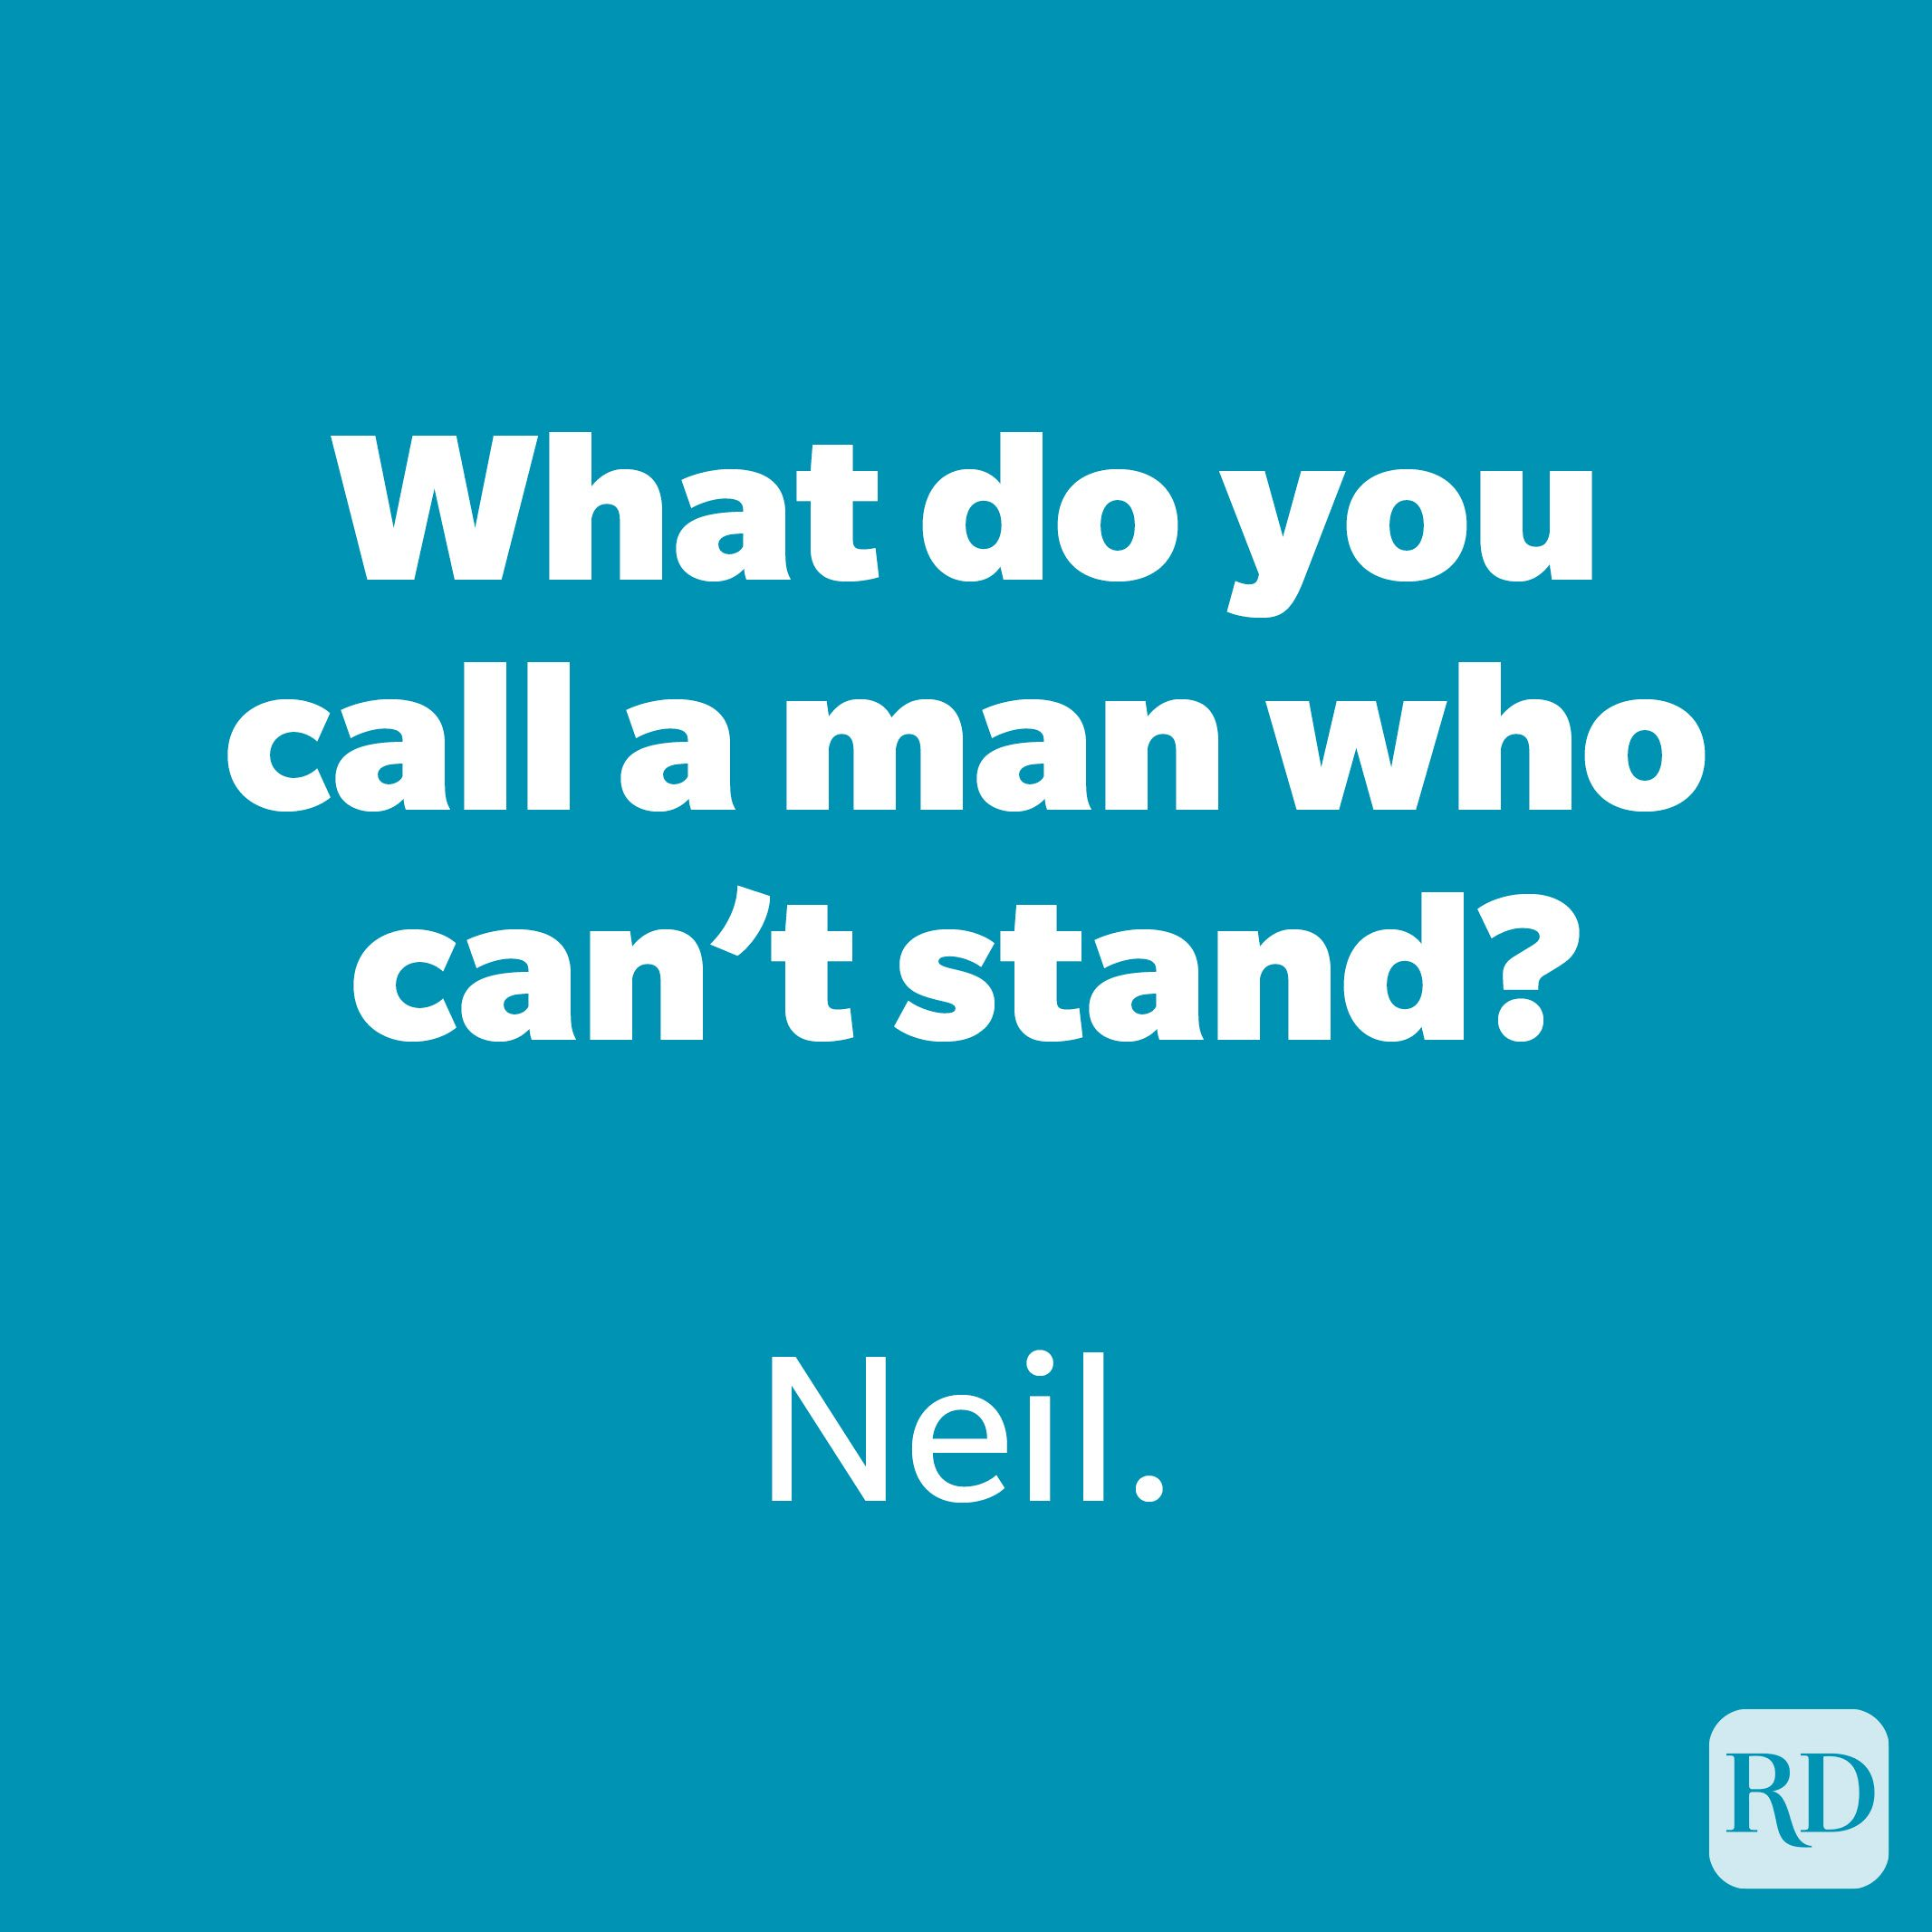 What do you call a man who can't stand?